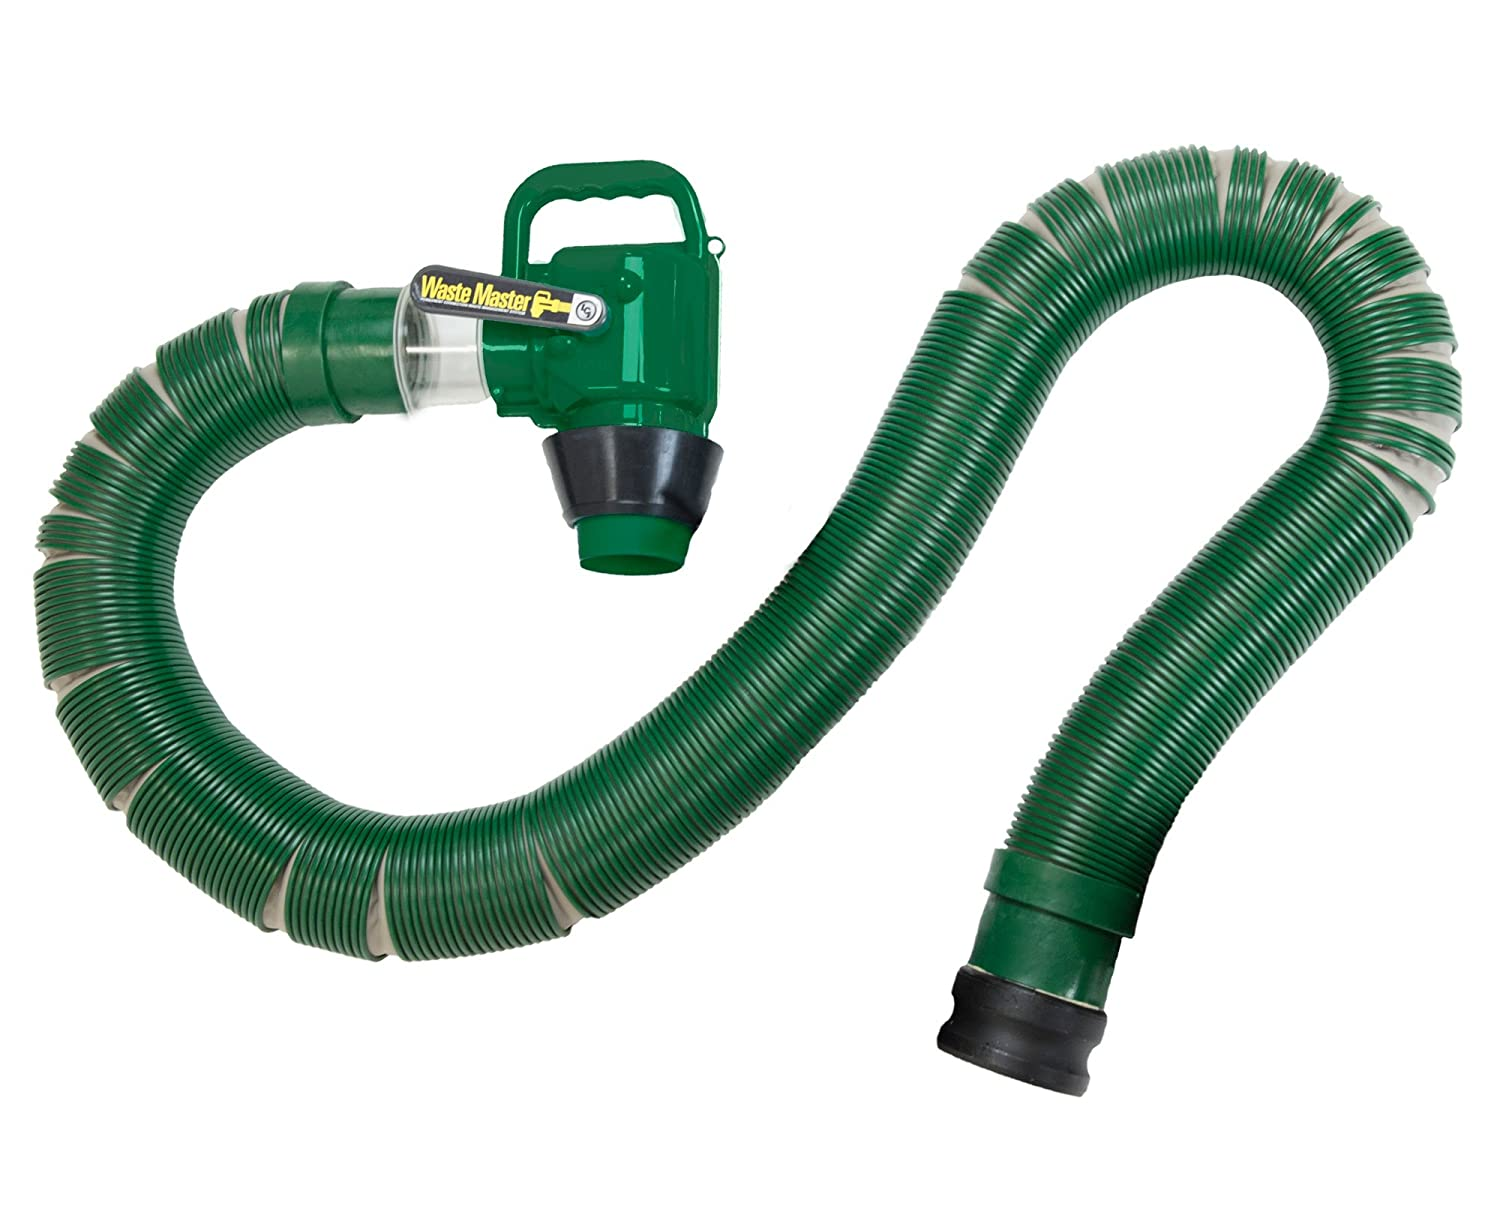 Lippert Waste Master 20' Extended RV Sewer Hose